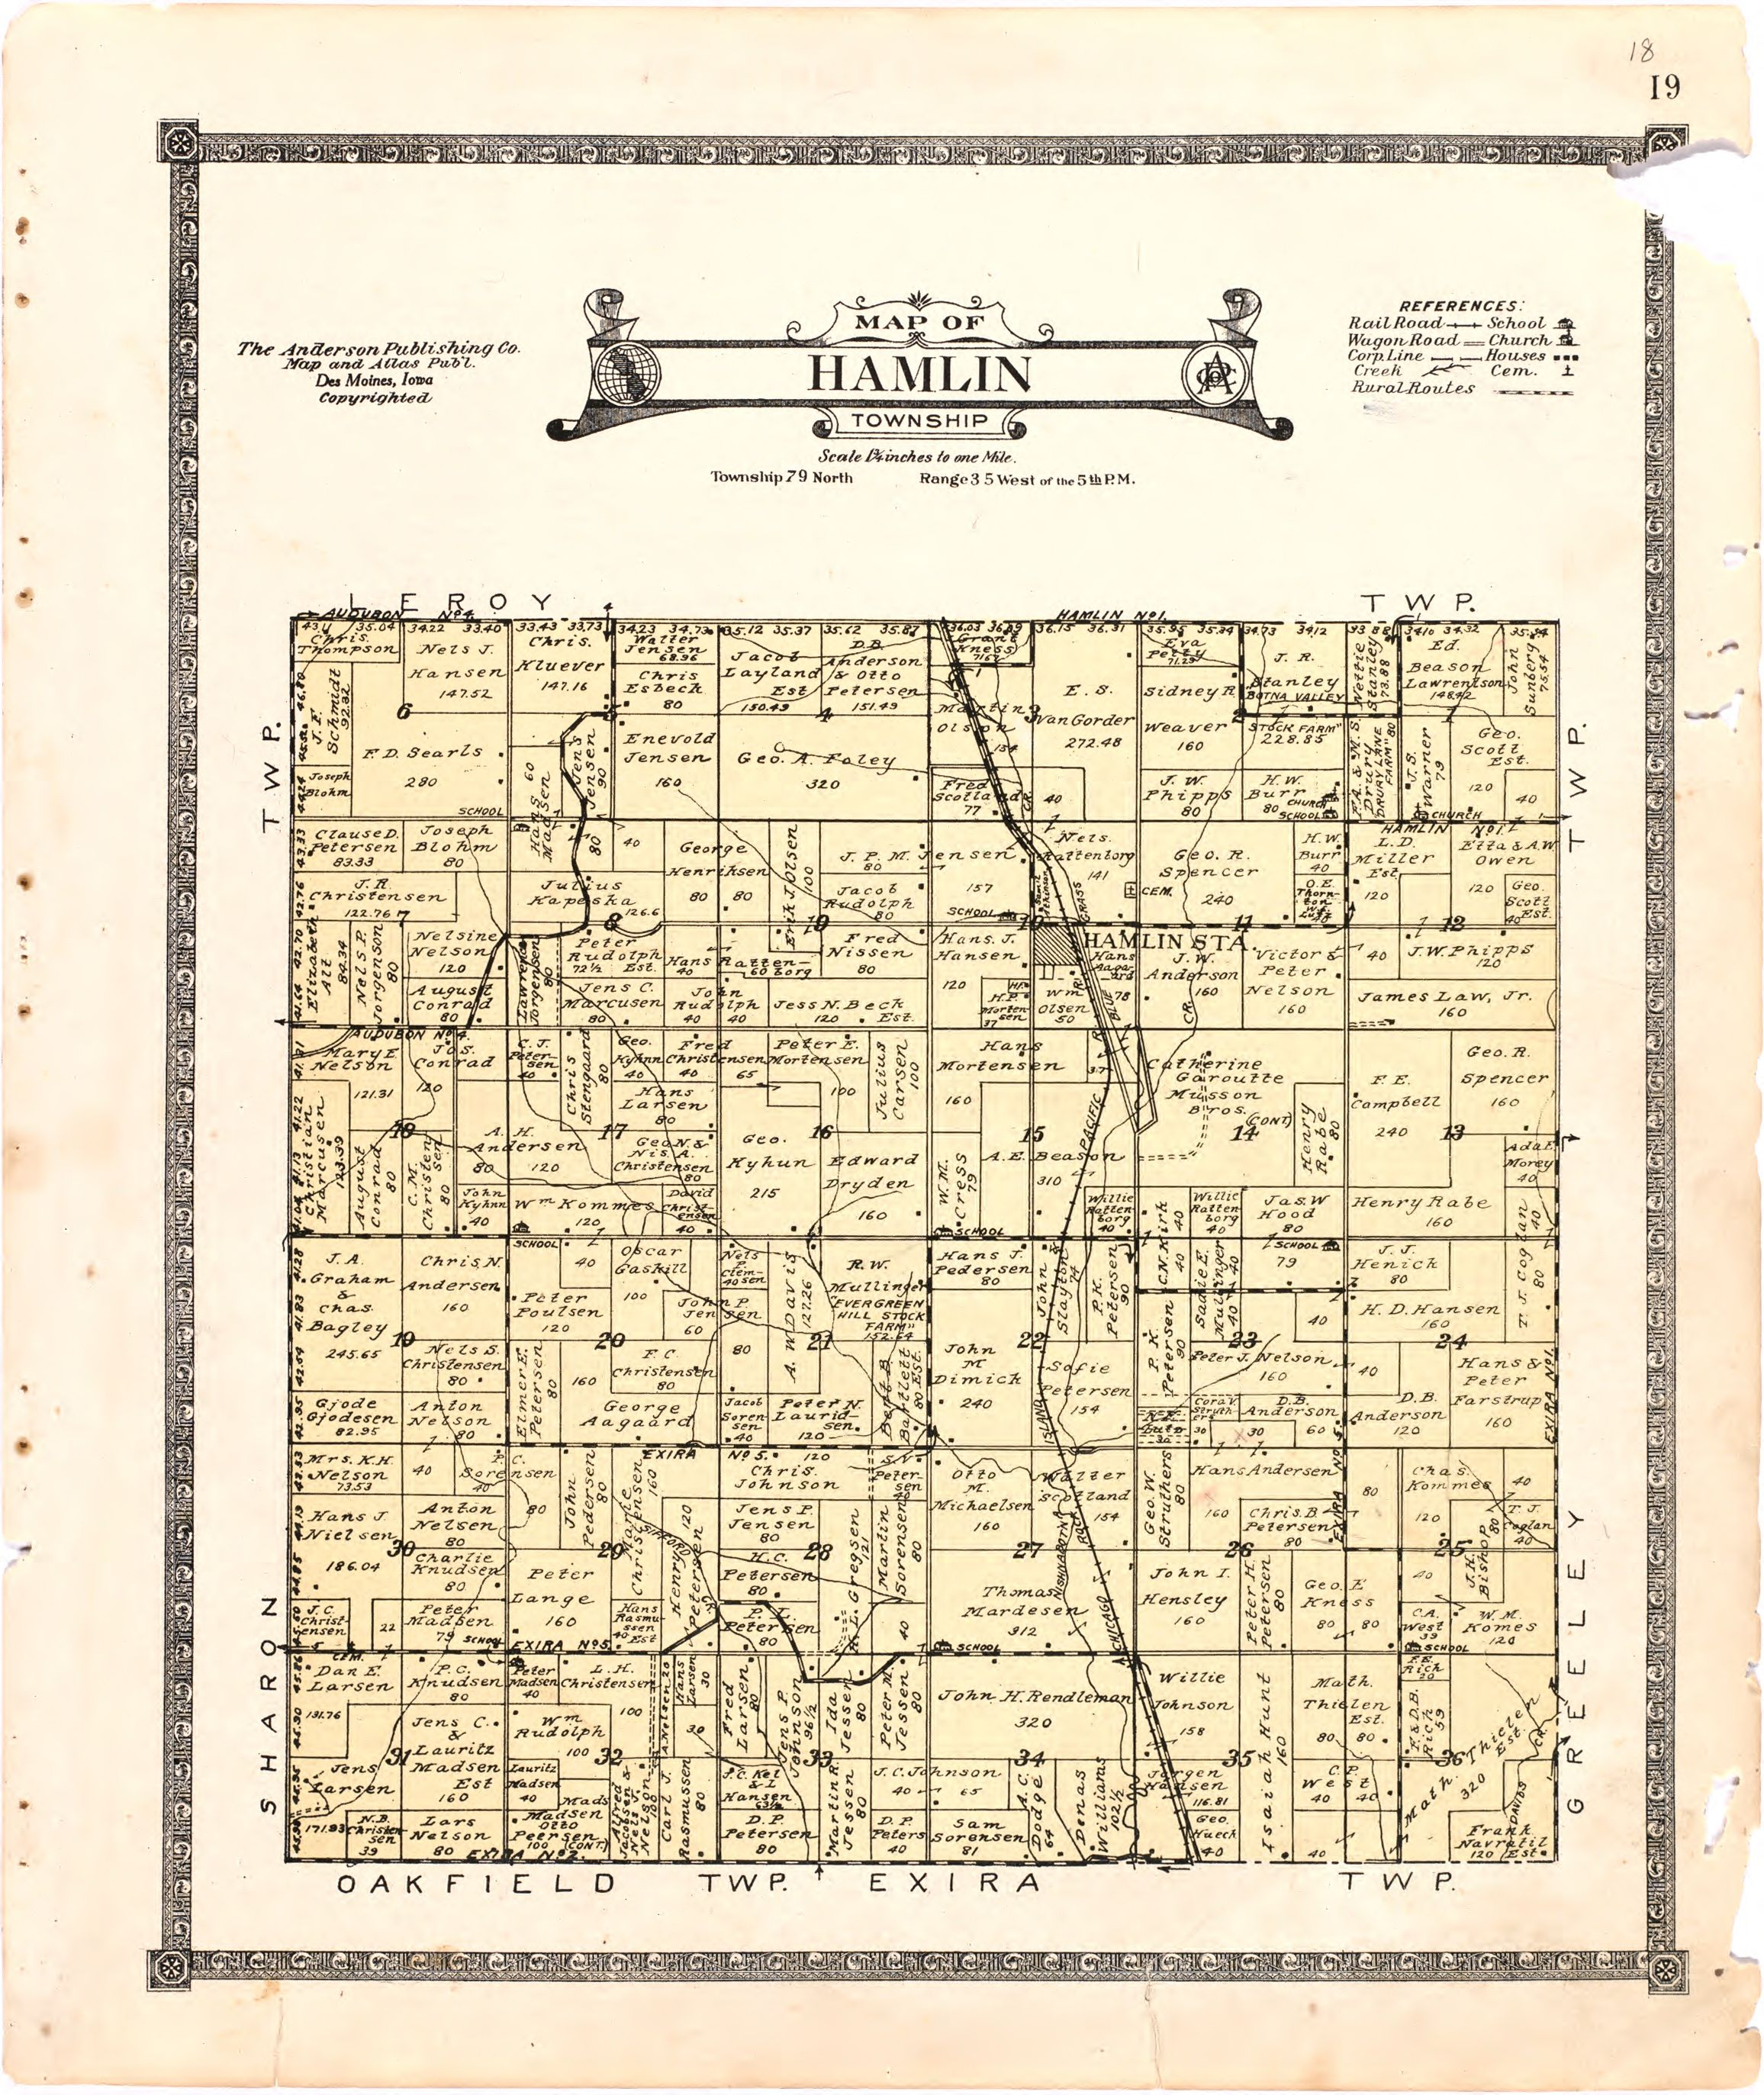 1921 Farm Map of Hamlin Township, Audubon County, Iowa